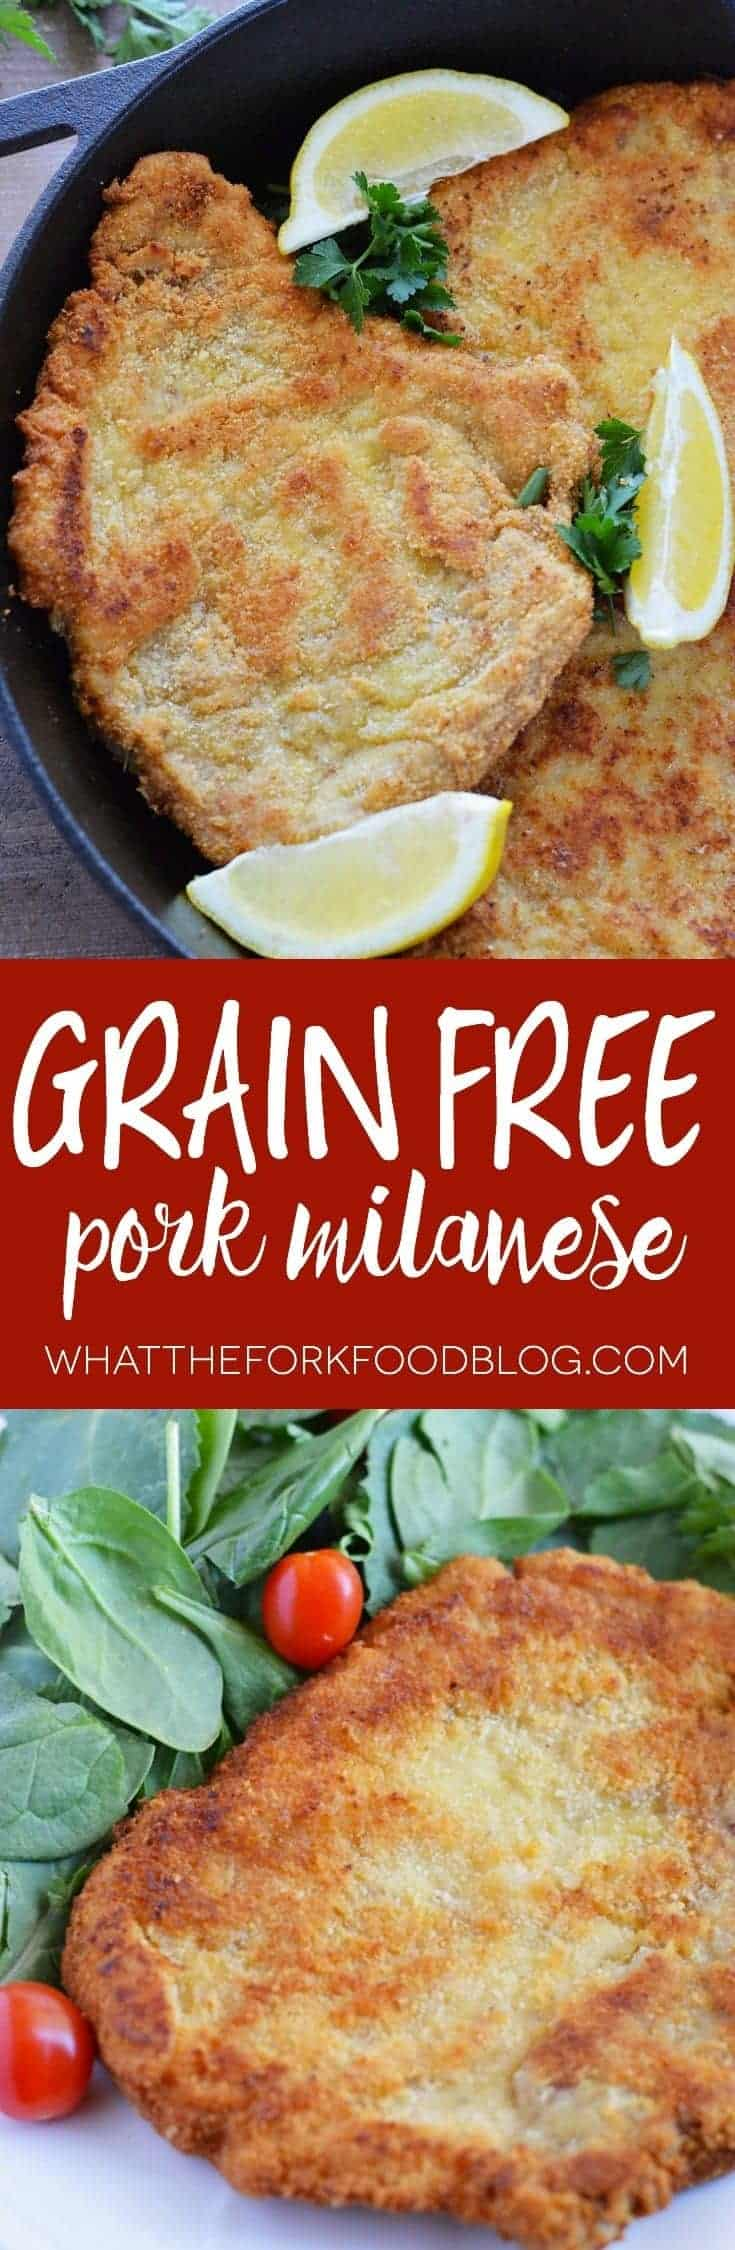 Grain Free Pork Milanese from What The Fork Food Blog | whattheforkfoodblog.com